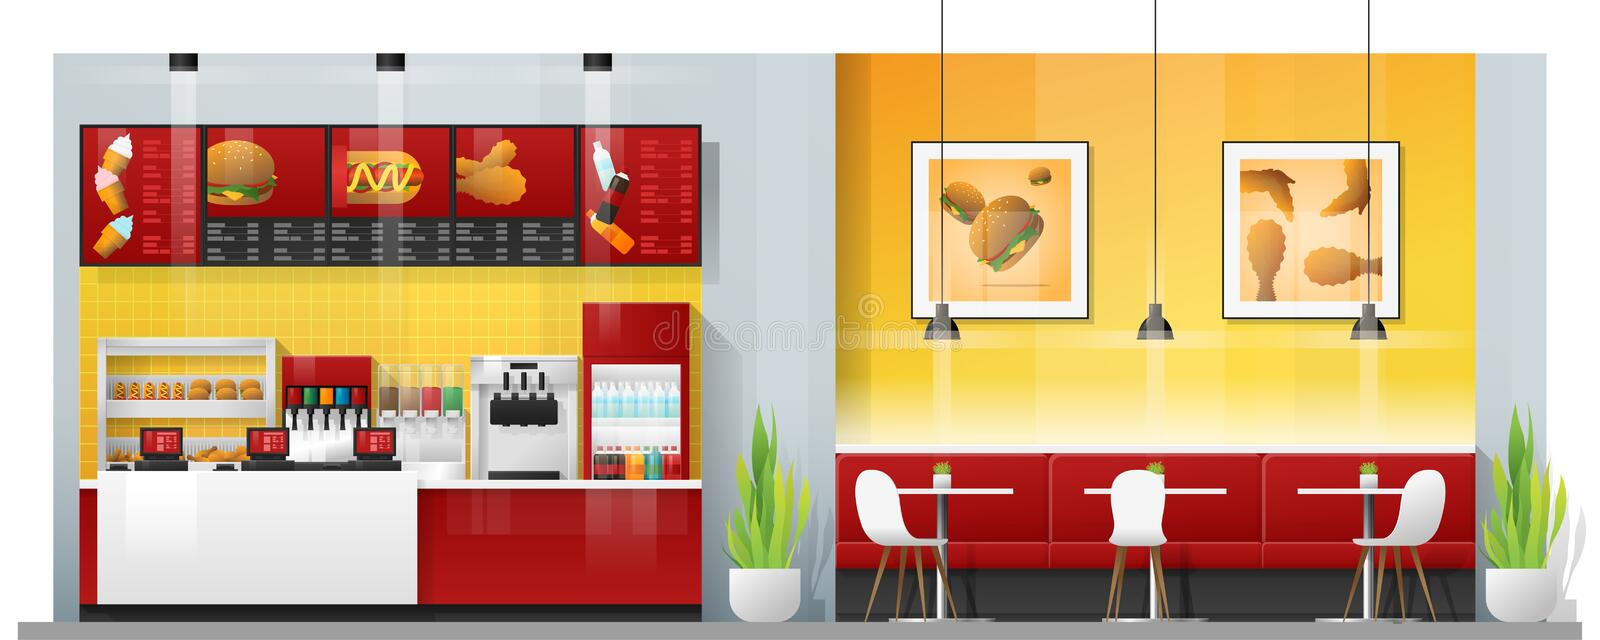 Interior scene of modern fast food restaurant with counter , tables and chairs. Vector , illustration royalty free illustration